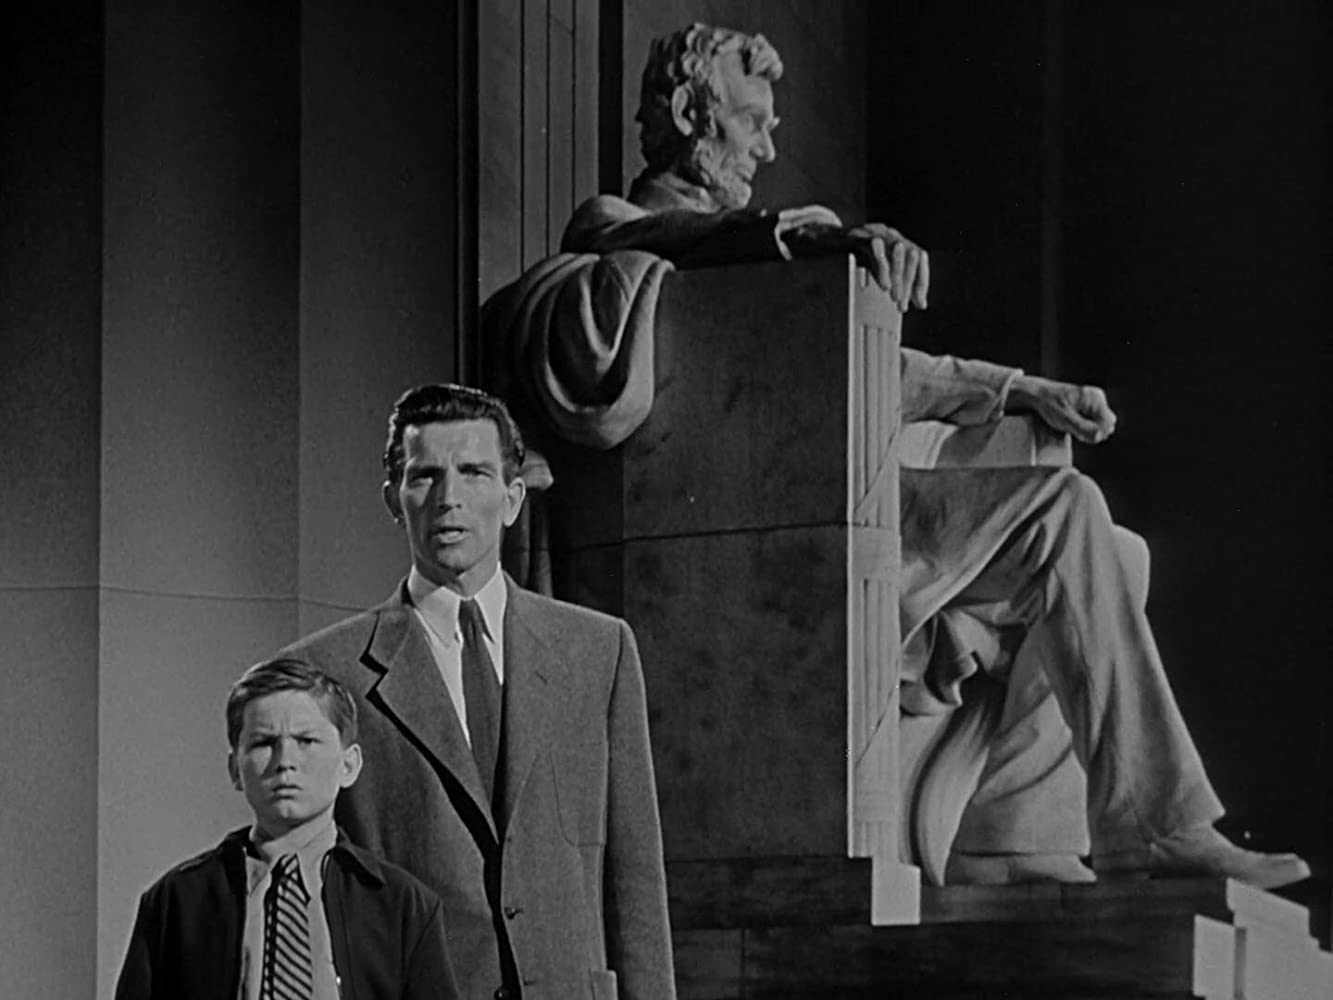 Billy Gray and Michael Rennie in The Day the Earth Stood Still (1951)